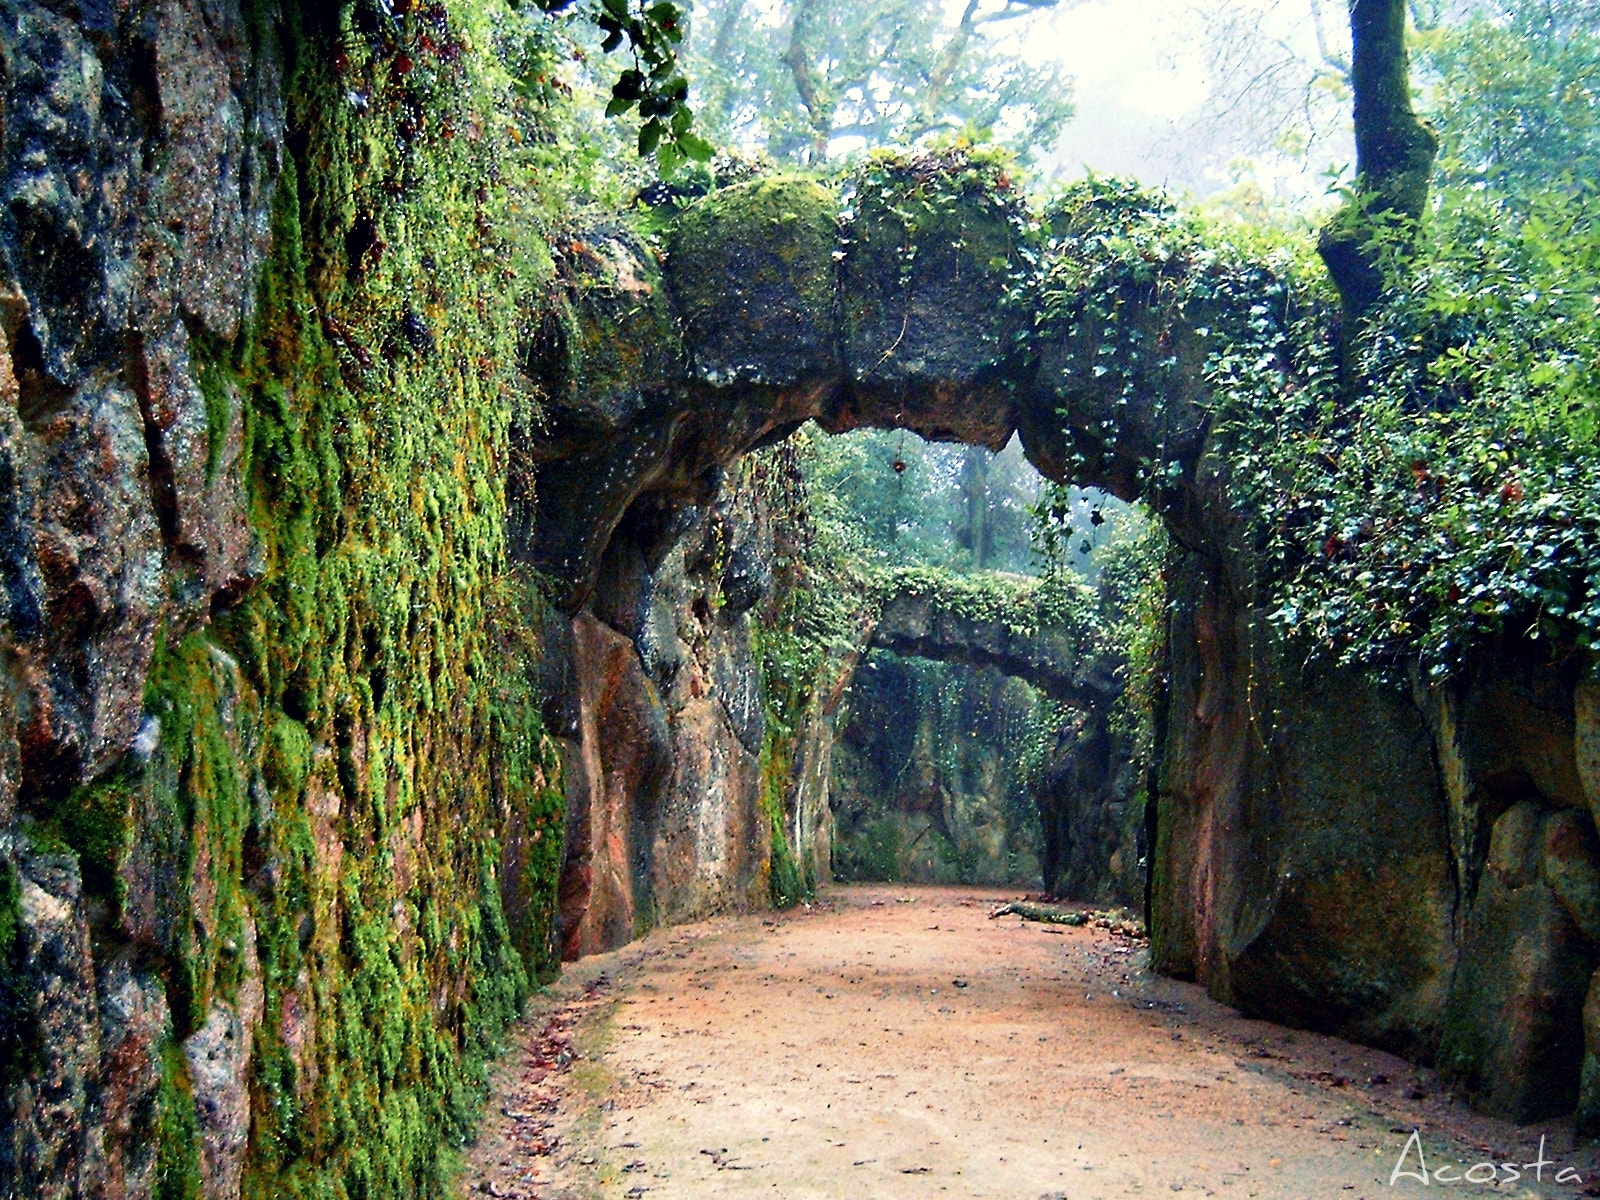 Photograph Sintra by Alicia Acosta on 500px